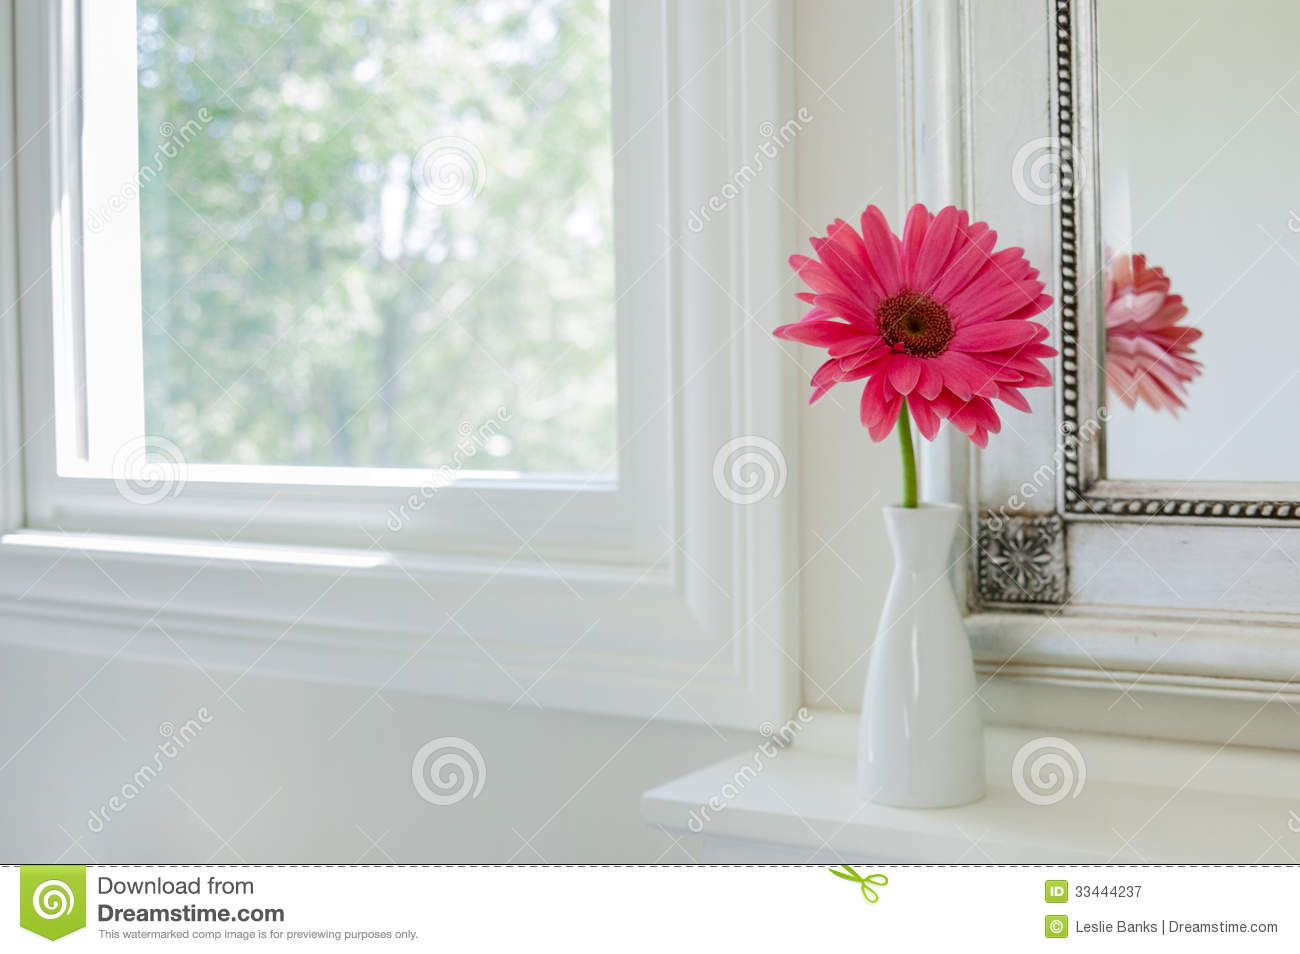 Displaying 18 gt images for pink daisies facebook cover